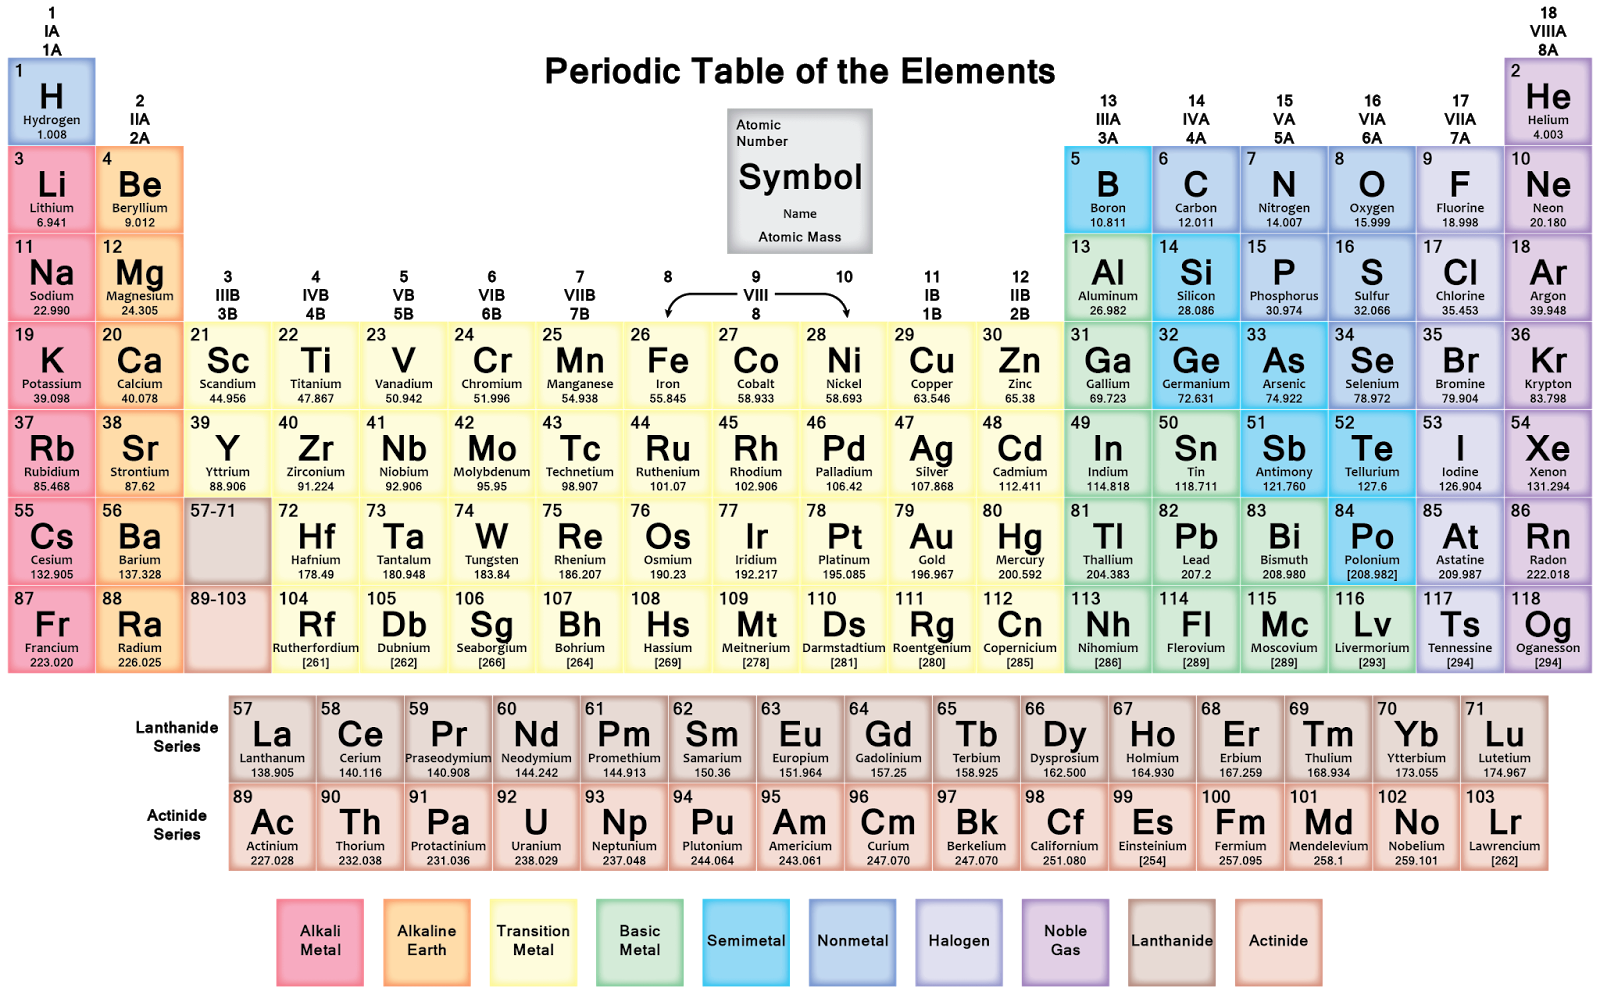 Blaines puzzle blog npr sunday puzzle oct 29 2017 metal name a well known nationality drop a letter and the remaining letters in order will name a metal one of the elements on the periodic table urtaz Image collections